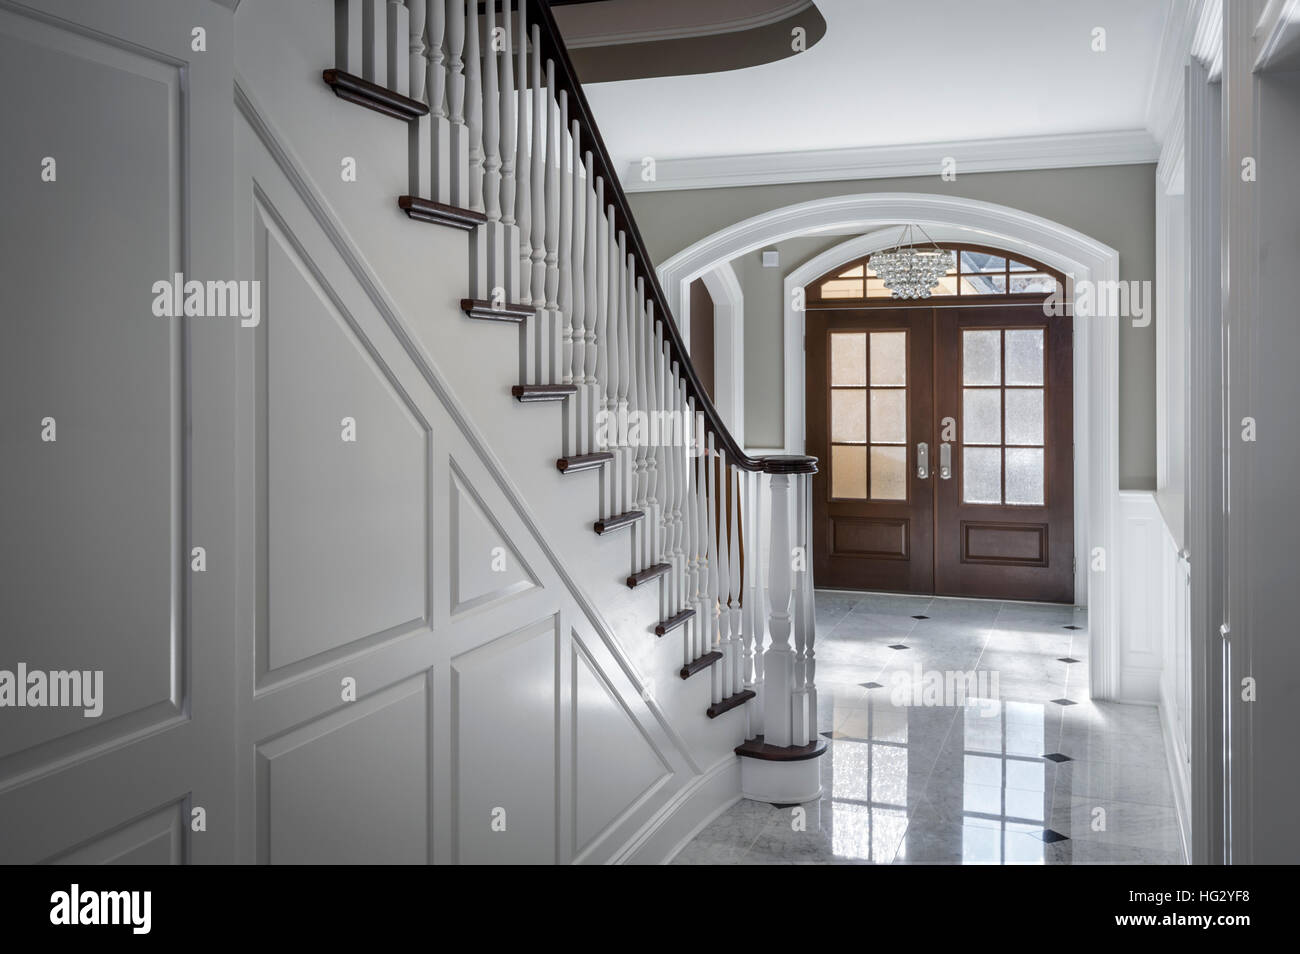 Front Foyer Staircase : White foyer interior staircase front door luxurious house